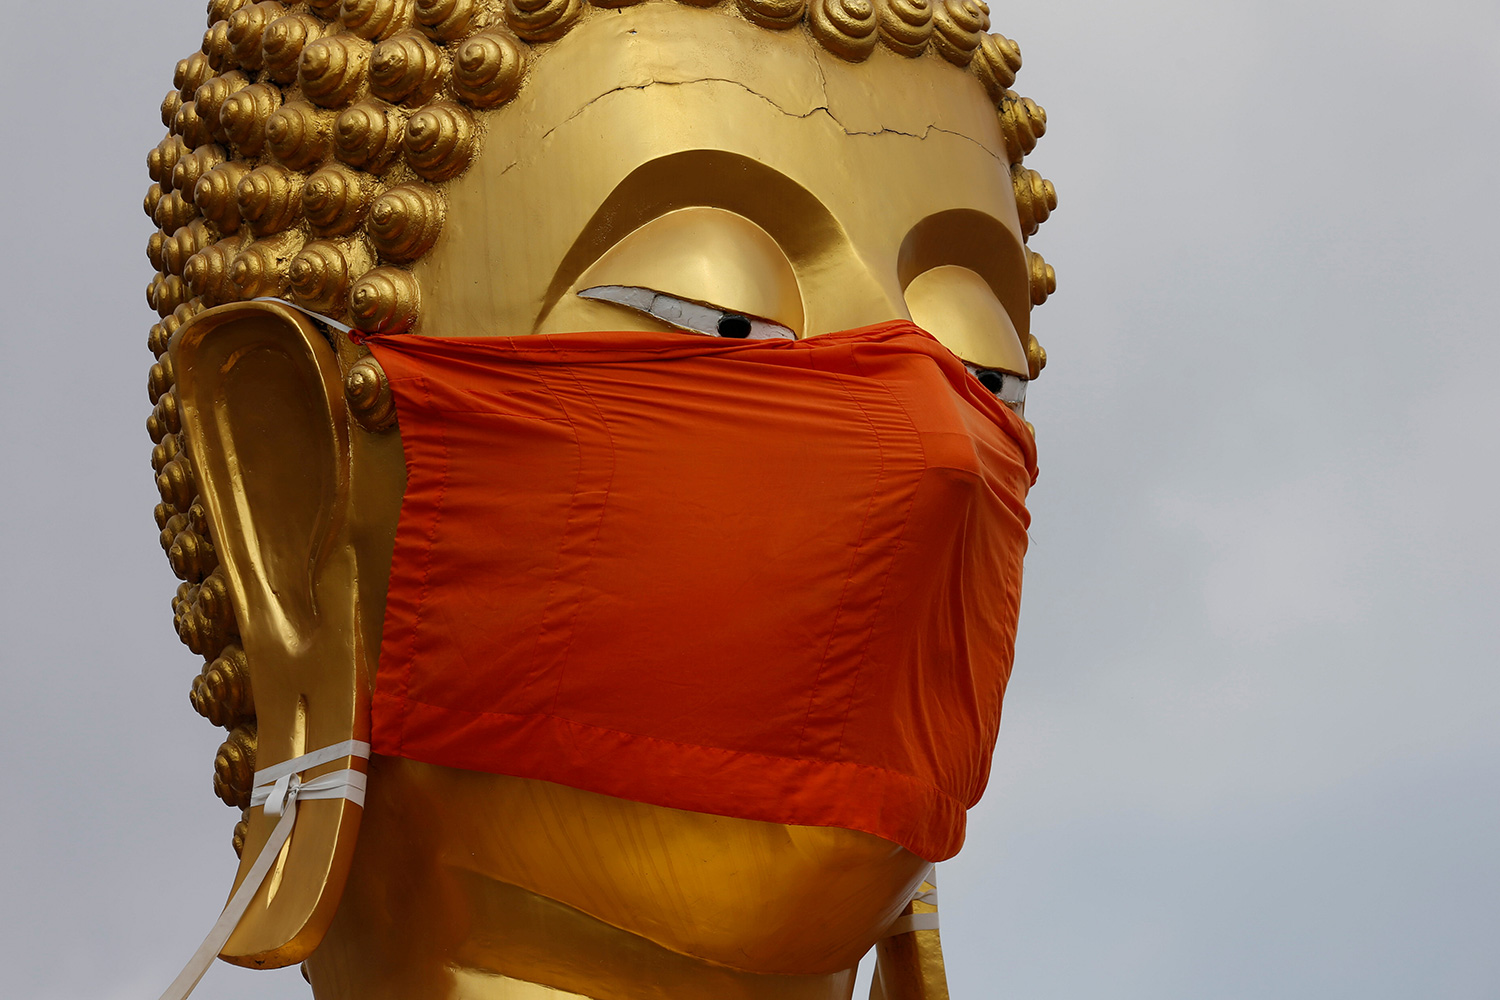 The image shows a golden headed Buddha wearing a bright red mask.